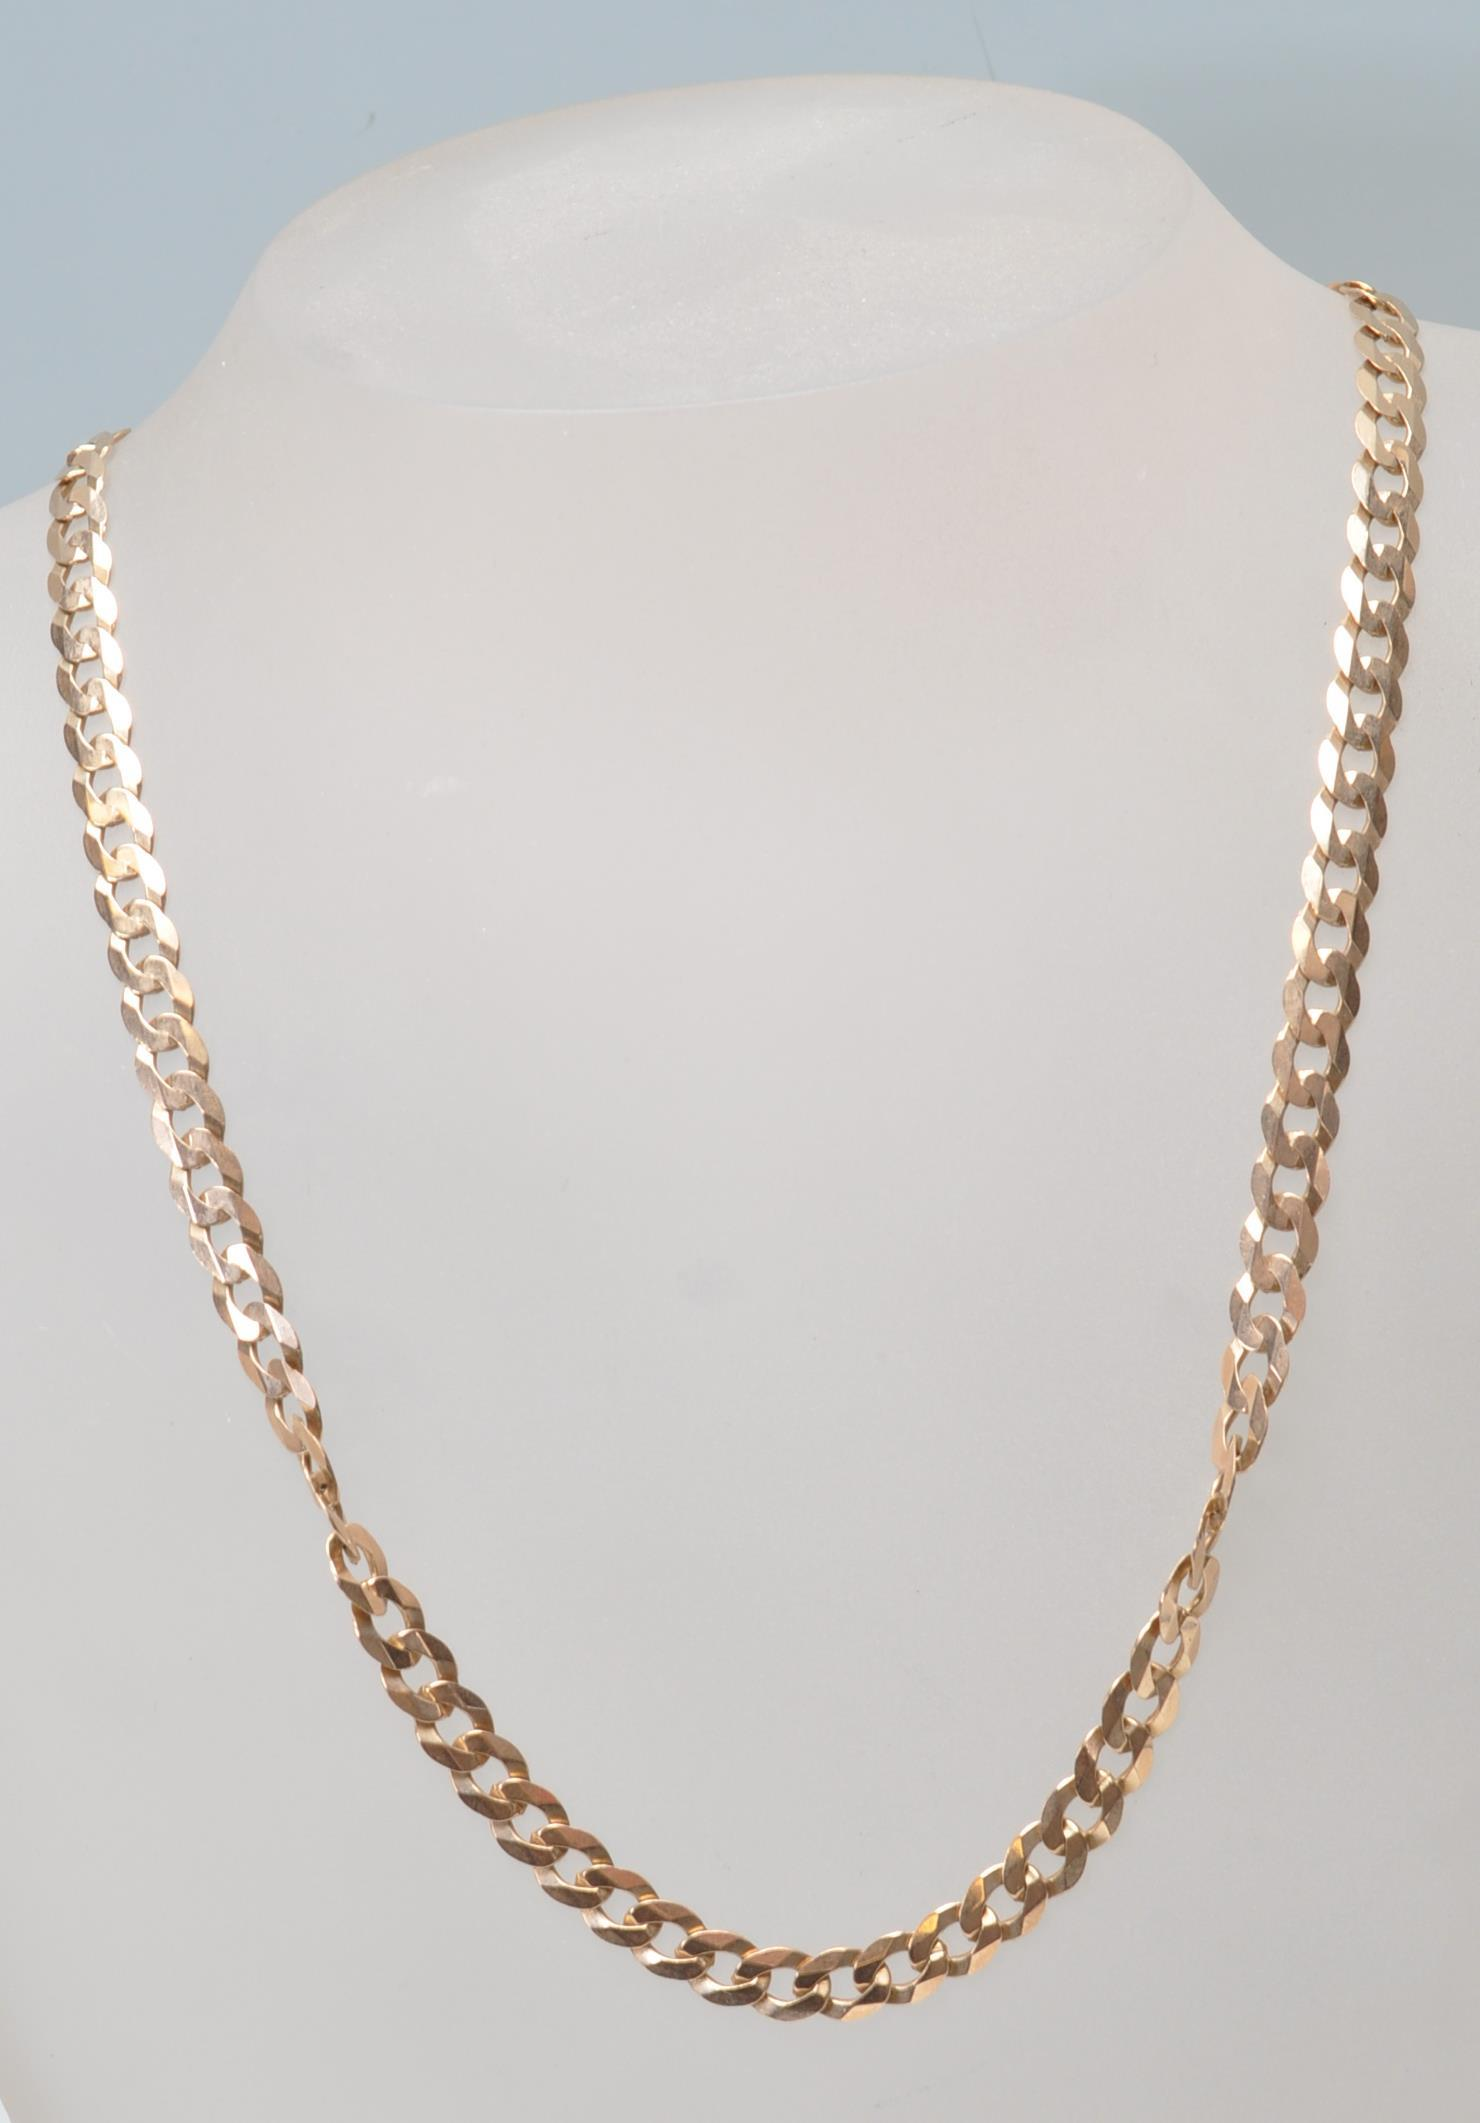 9CT GOLD FLAT LINK NECKLACE